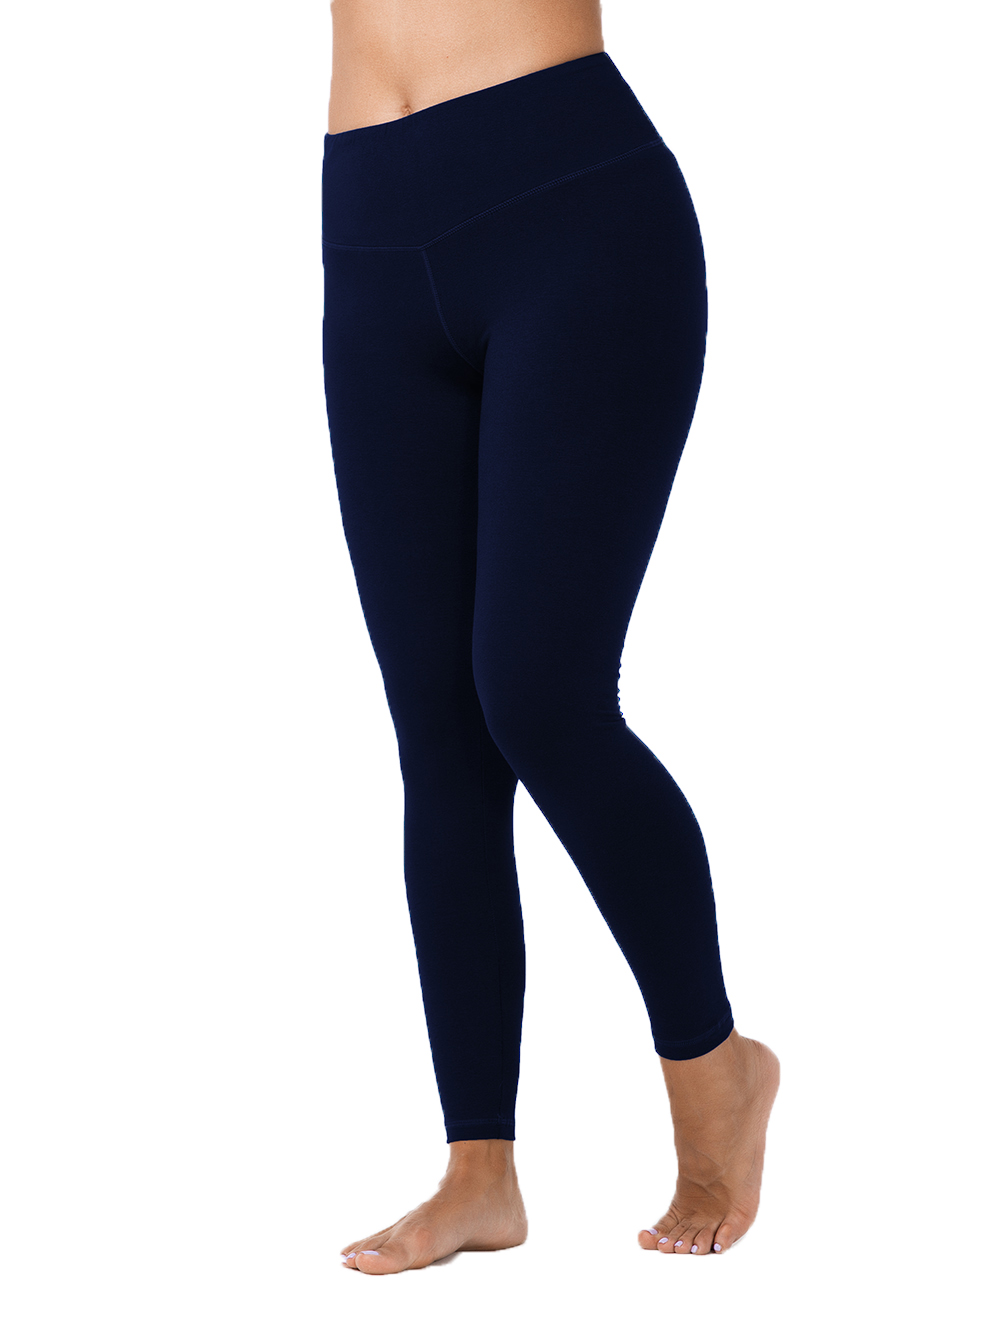 Conte Ultra Comfort navy long